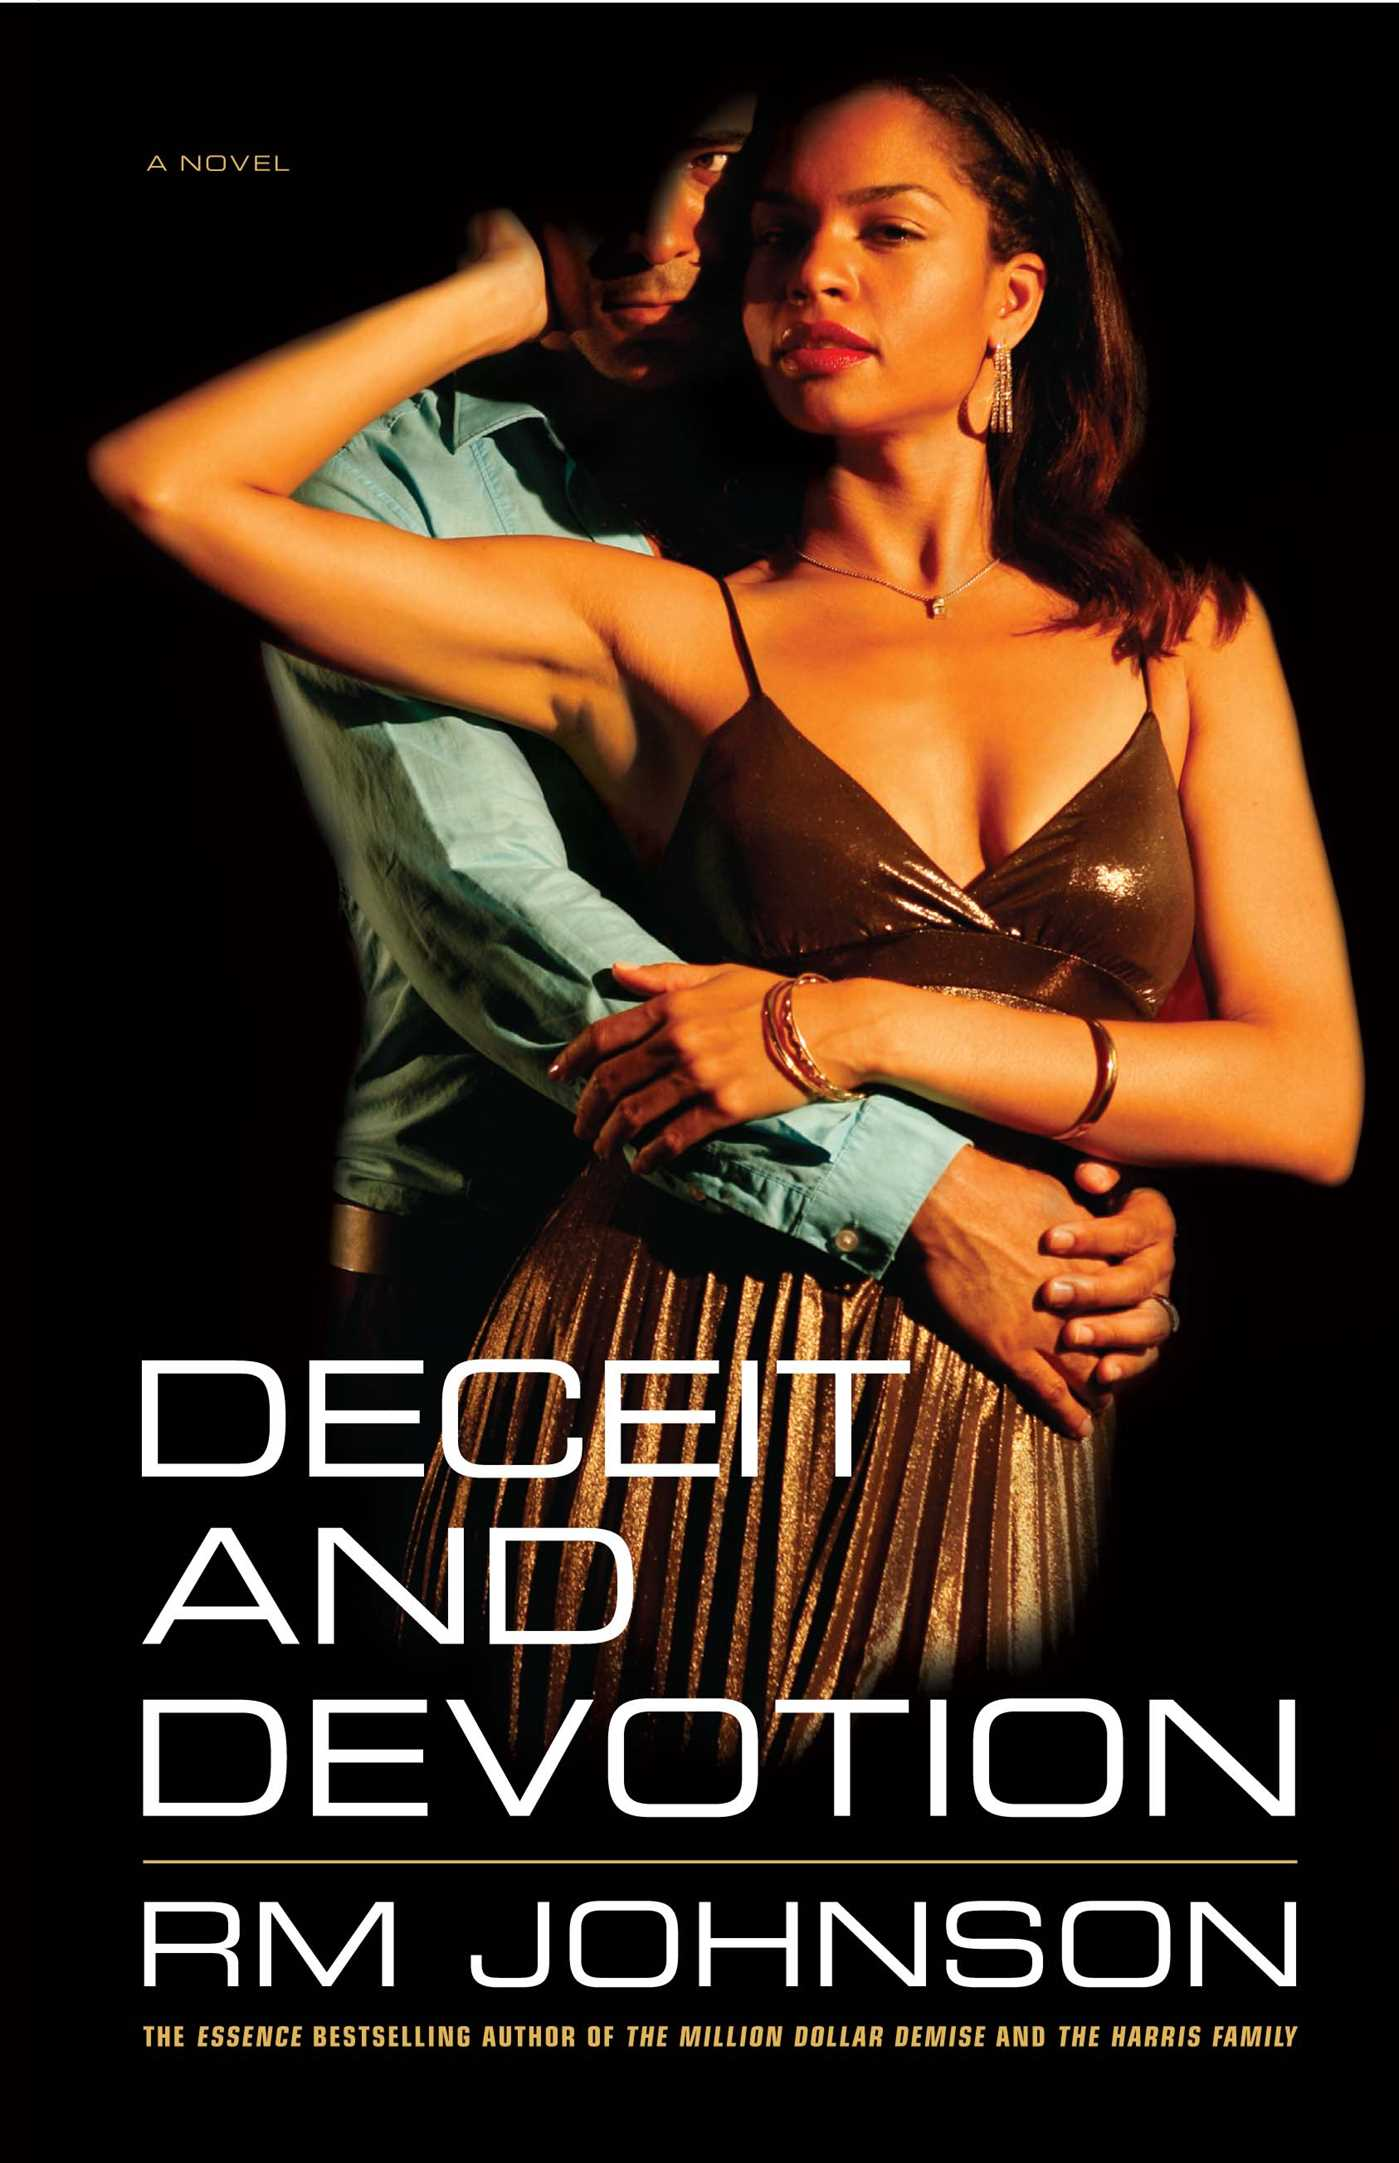 Deceit-and-devotion-9781439180587_hr